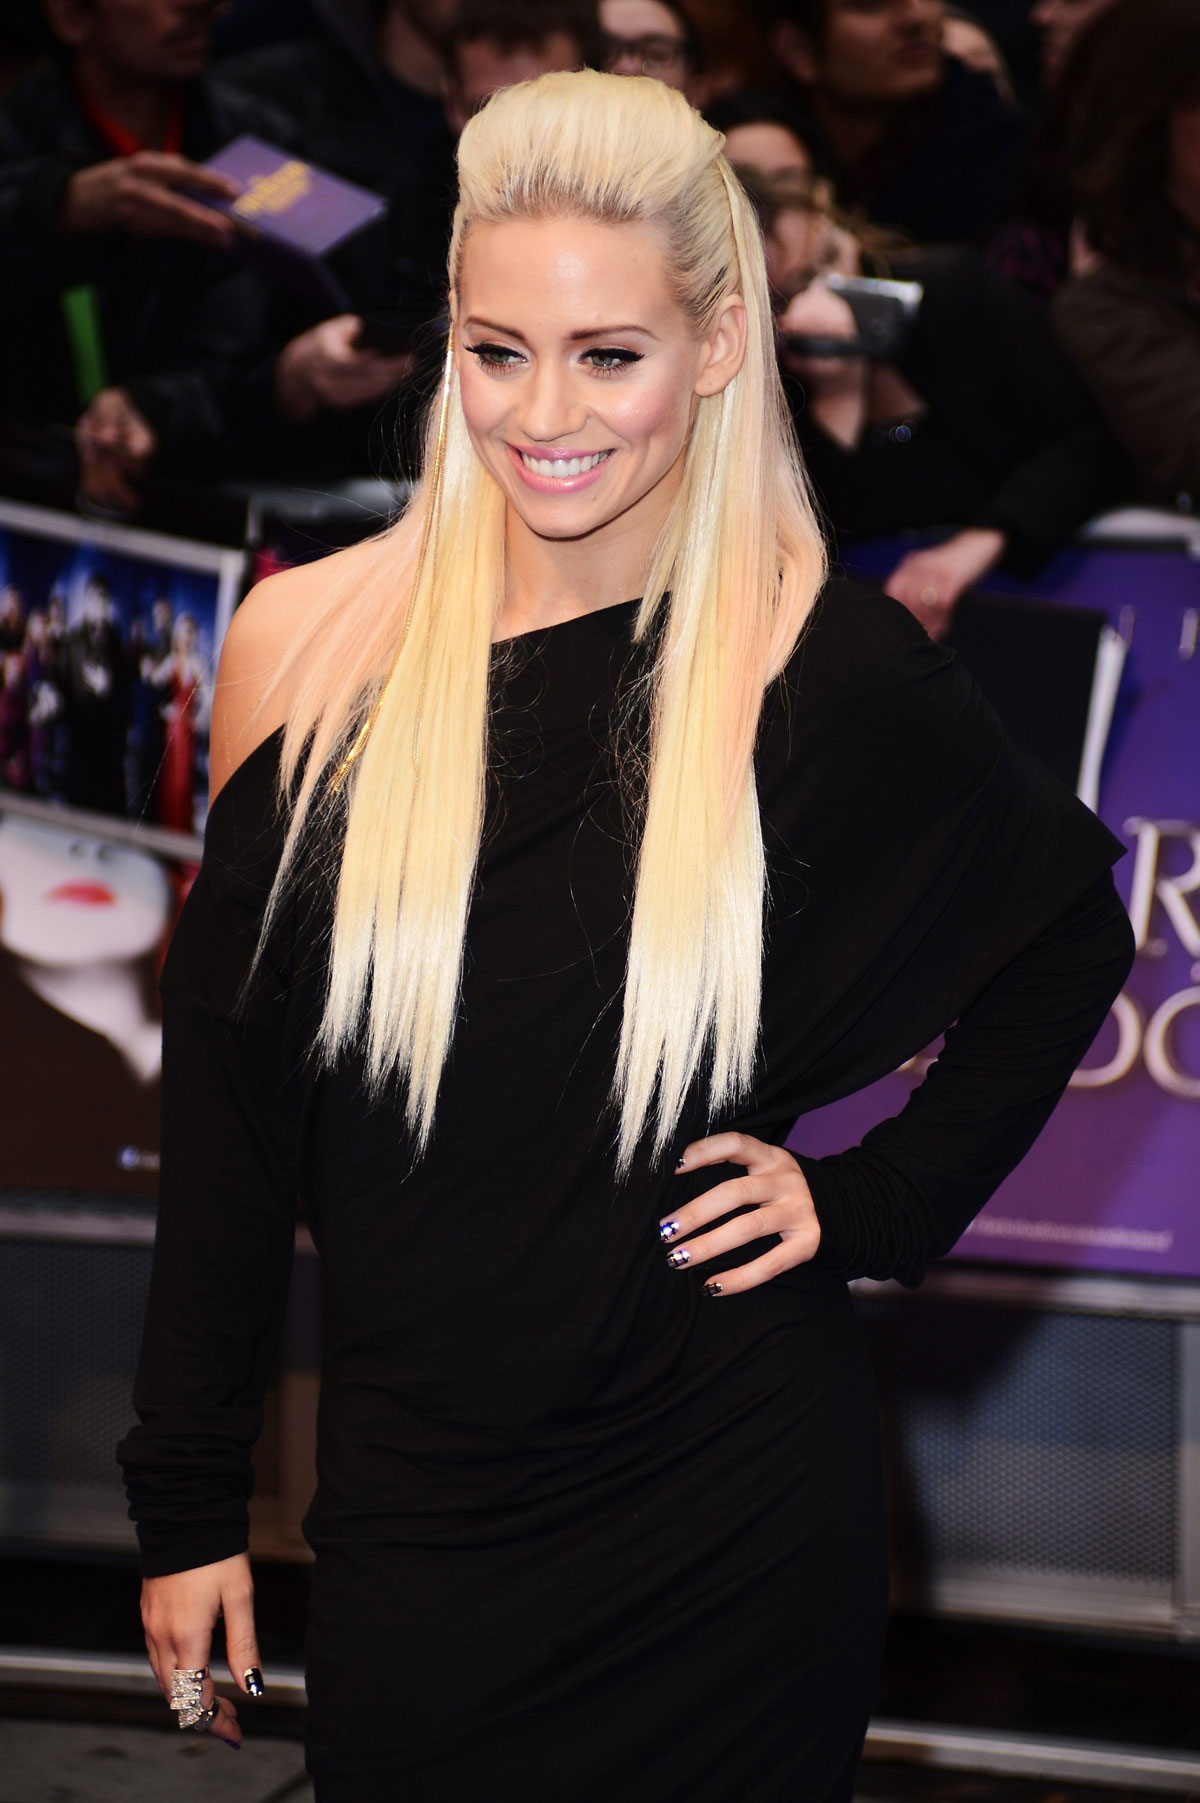 KIMBERLY WYATT at Dark Shadows Premiere in London